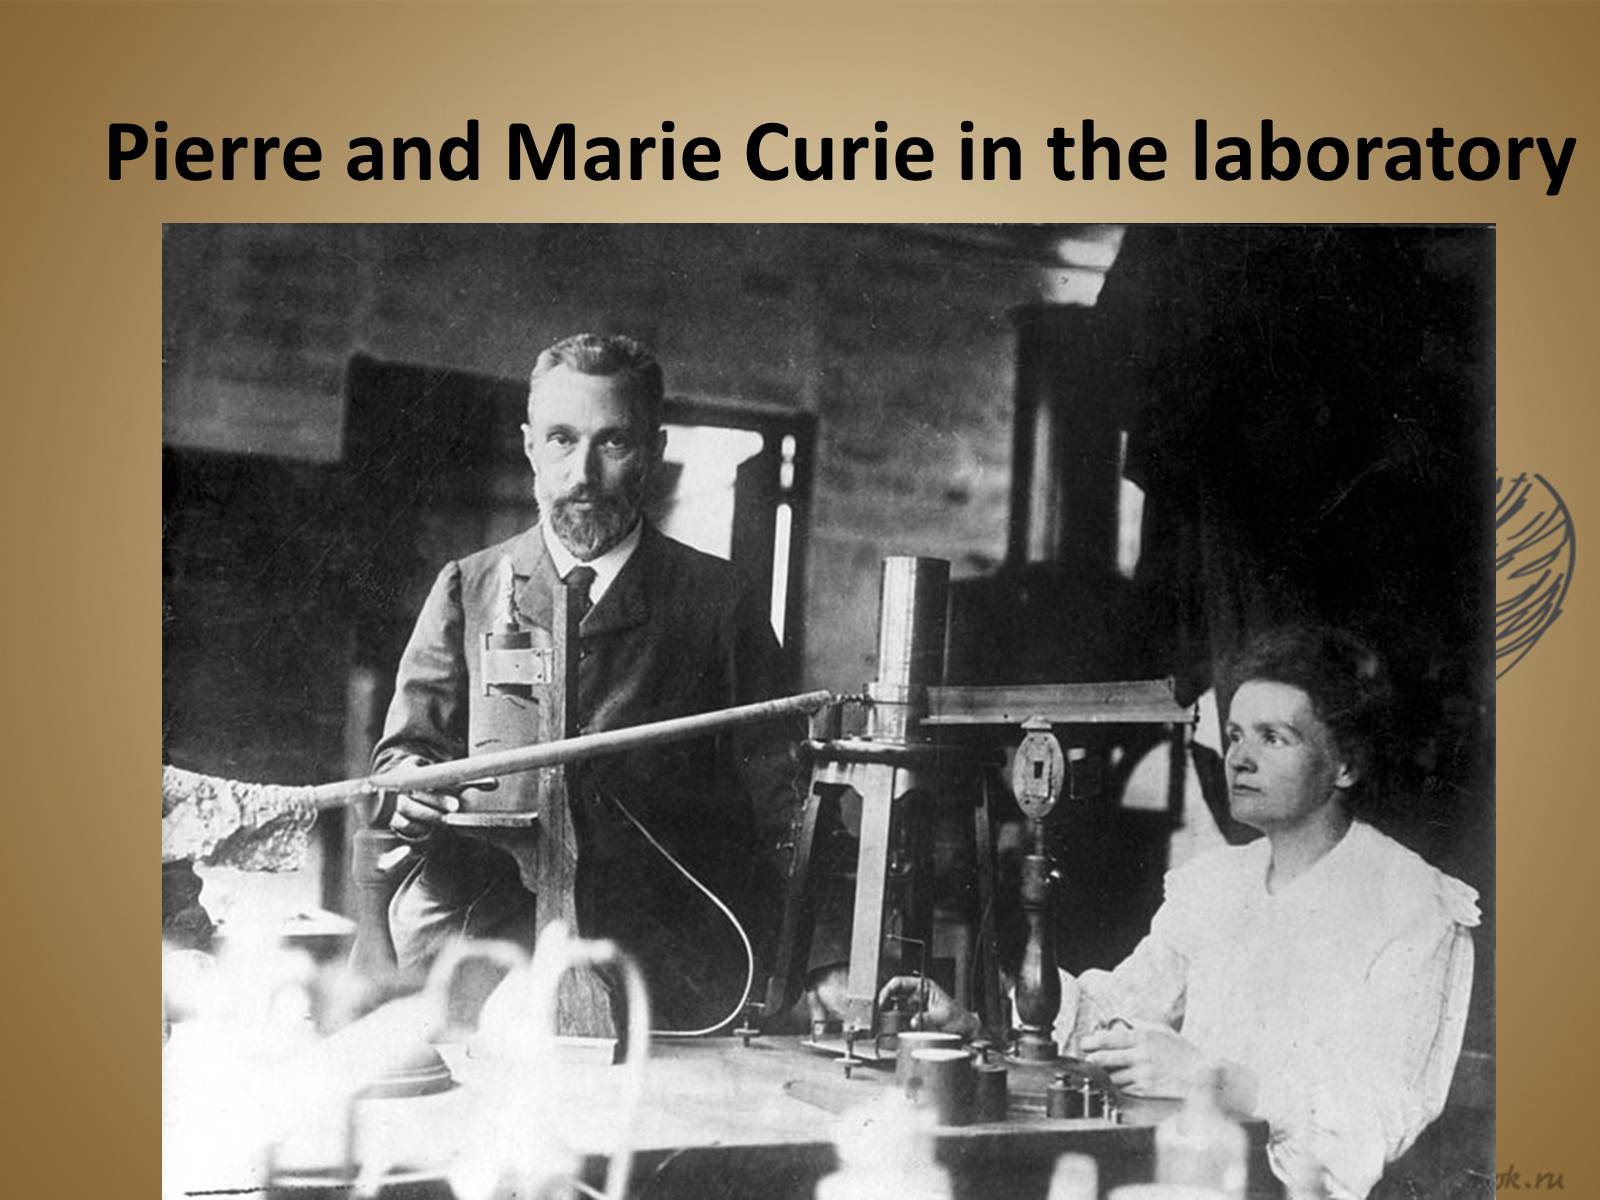 a report on marie curie Marie curie was the first truly famous woman scientist in the modern world she was known as the mother of modern physics for her pioneer work in research about radioactivity, a word she coined.